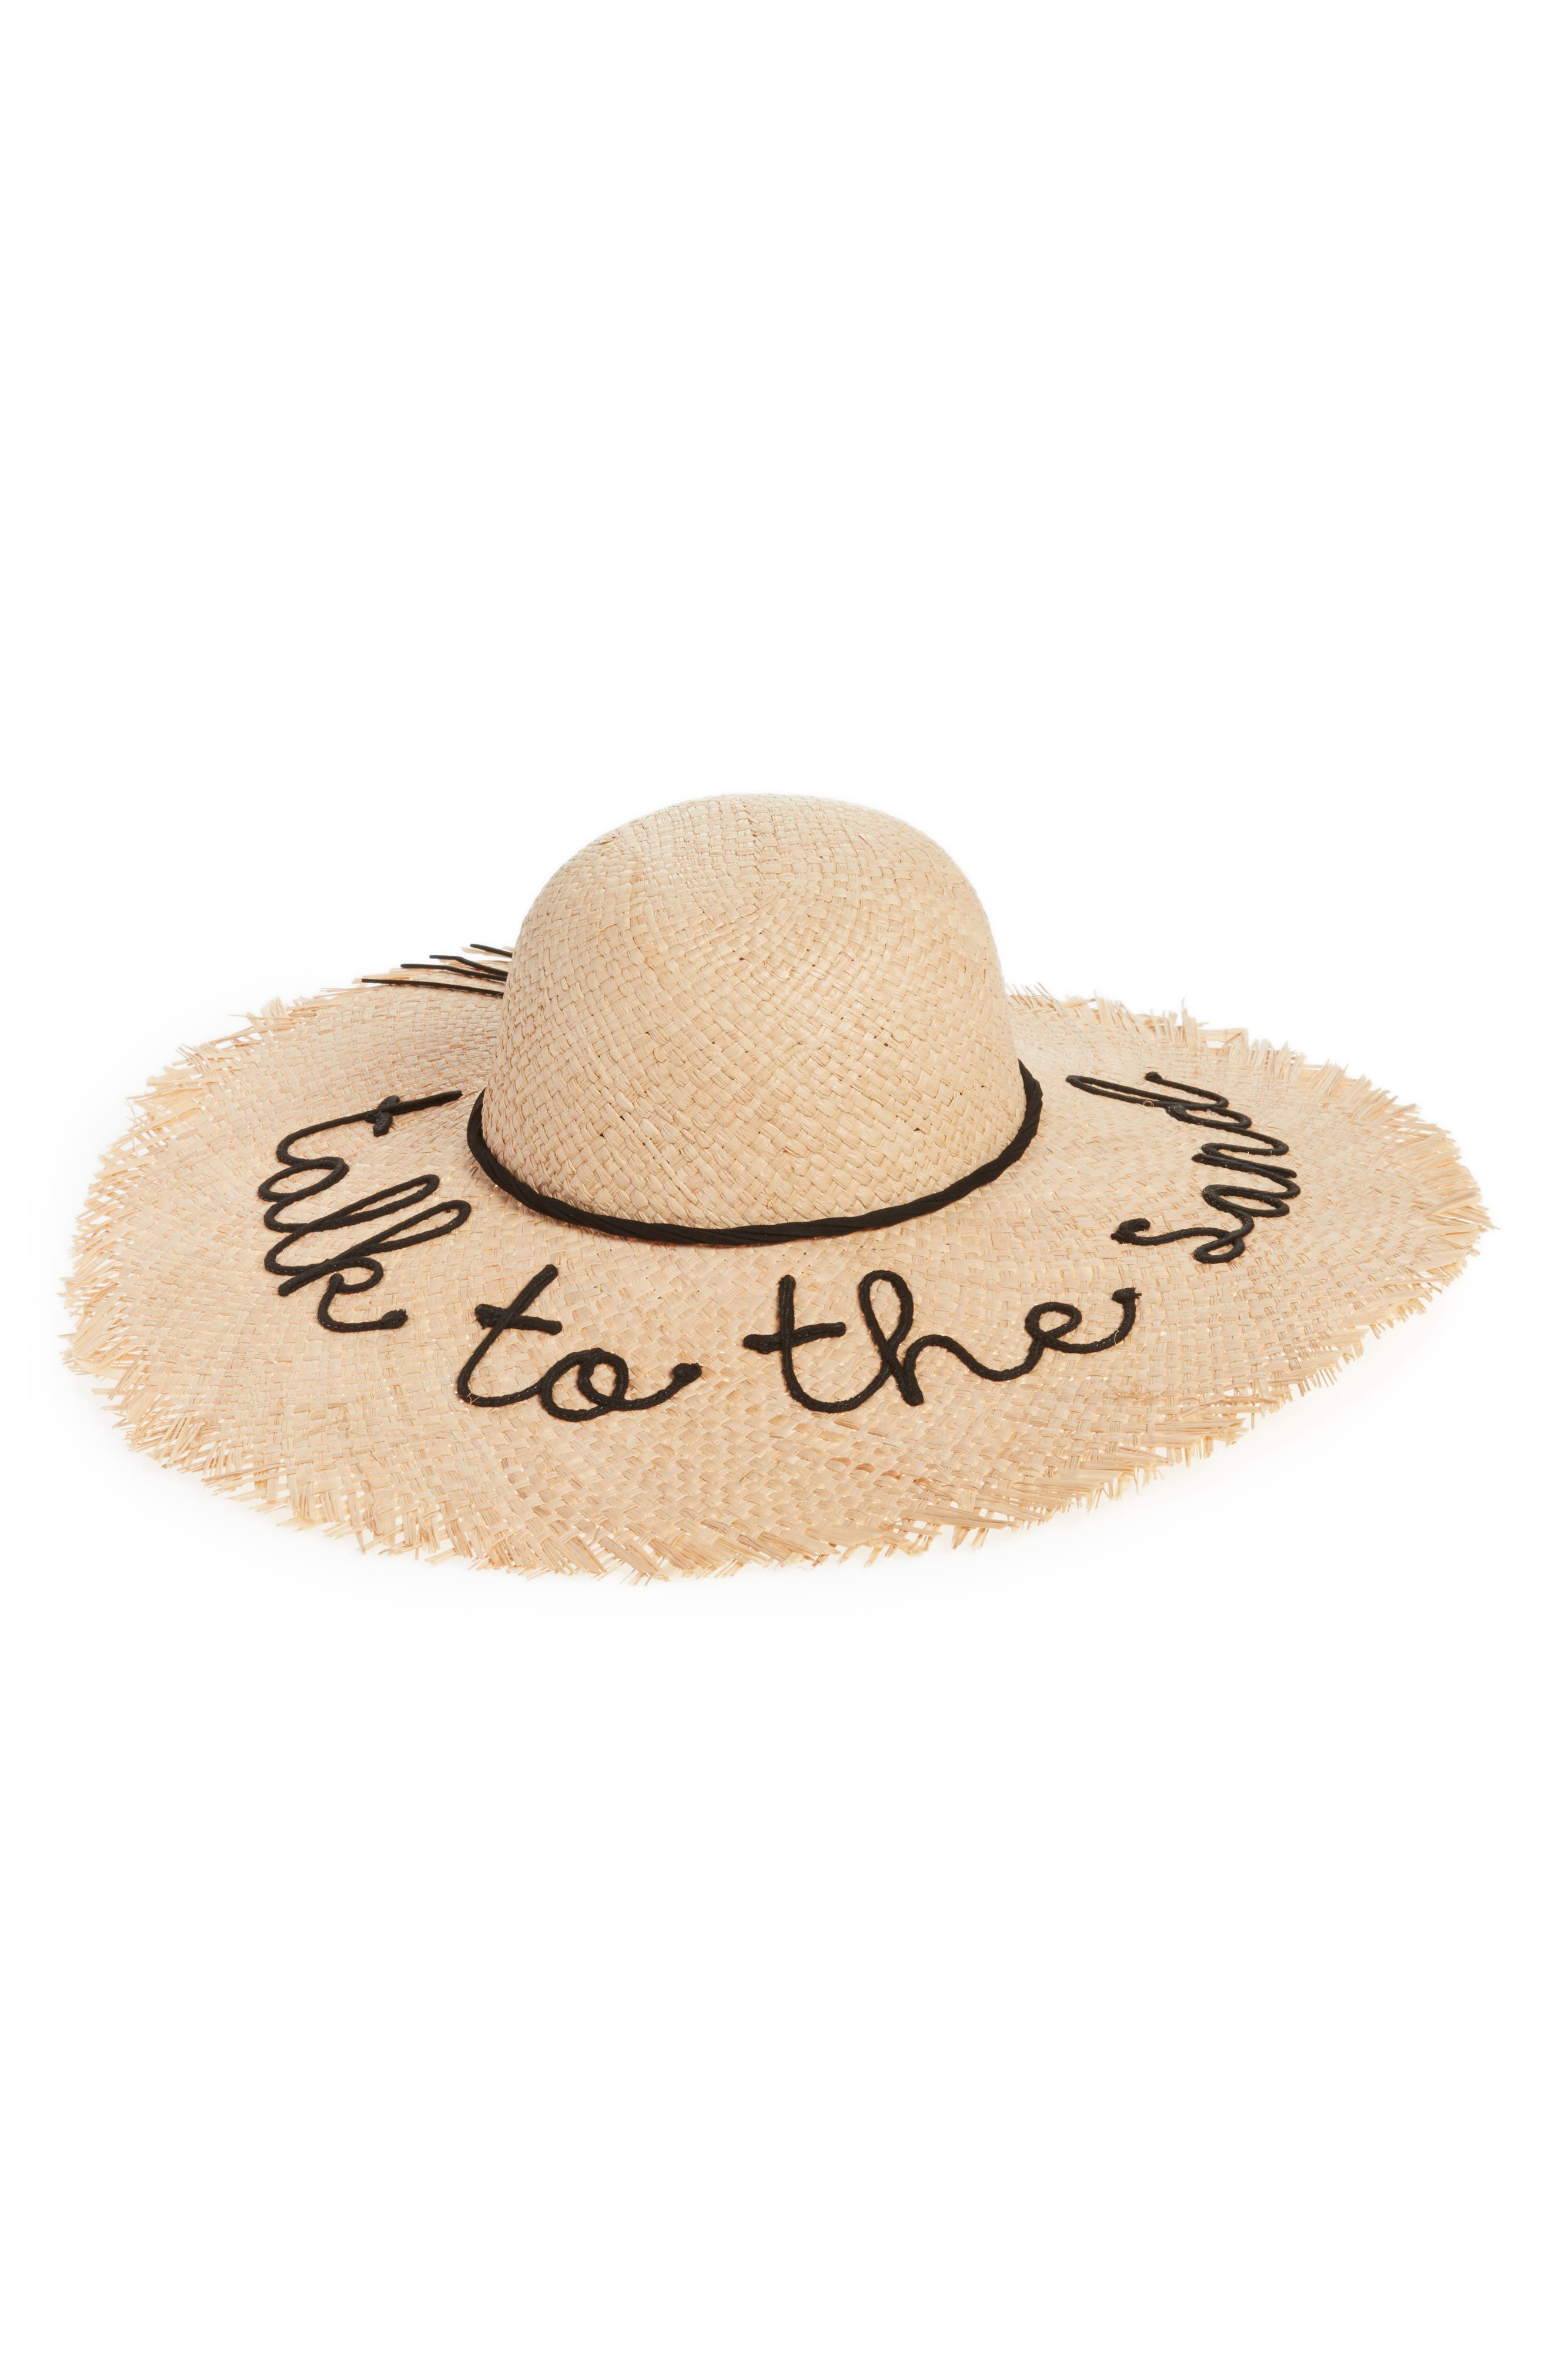 Frayed Edge Floppy Straw Hat,                             Main thumbnail 1, color,                             250